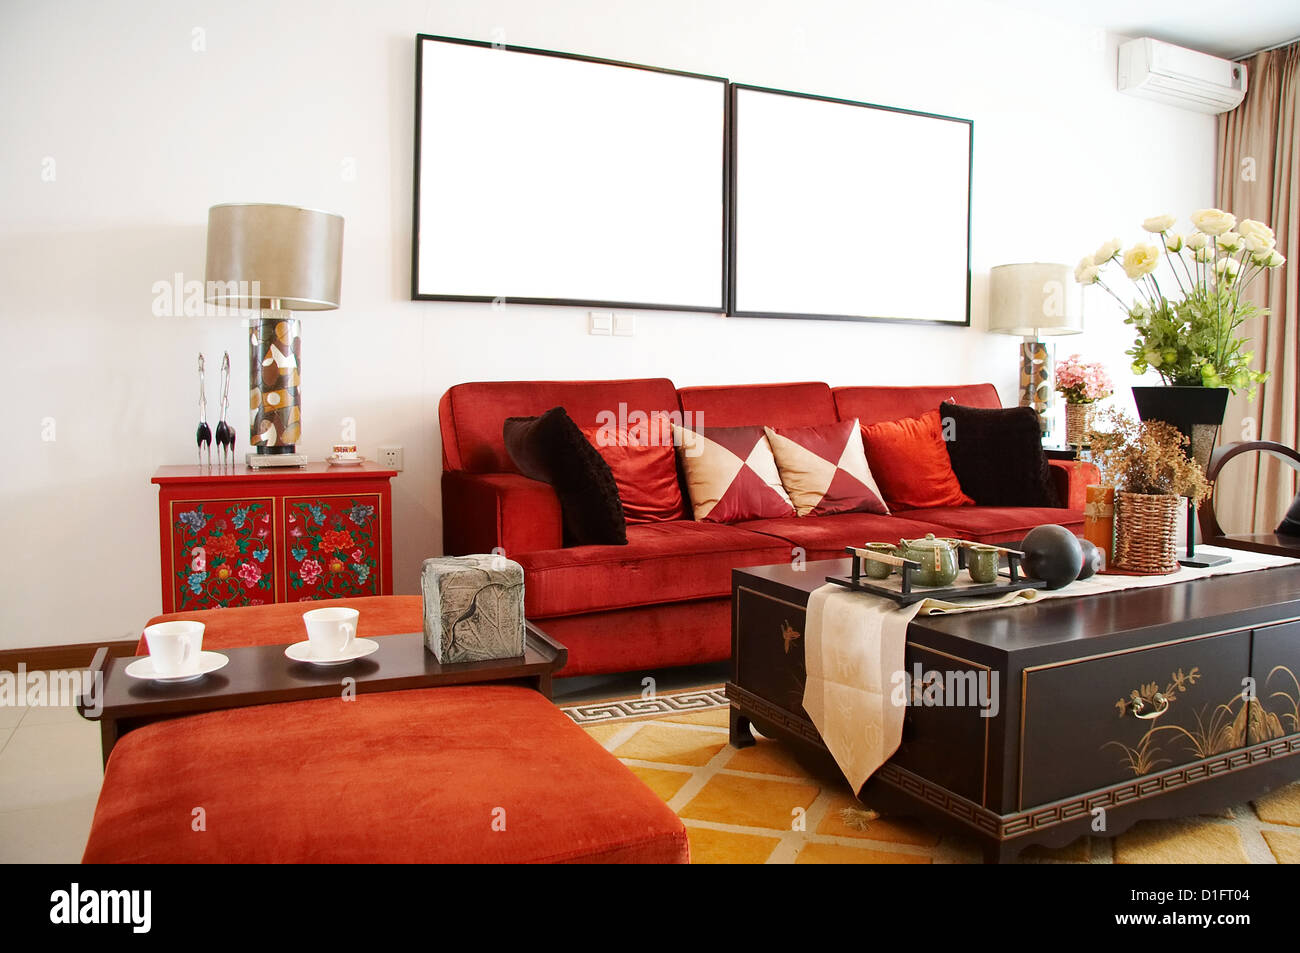 Living Room With Red Sofa,Chinese Style Stock Photo ...